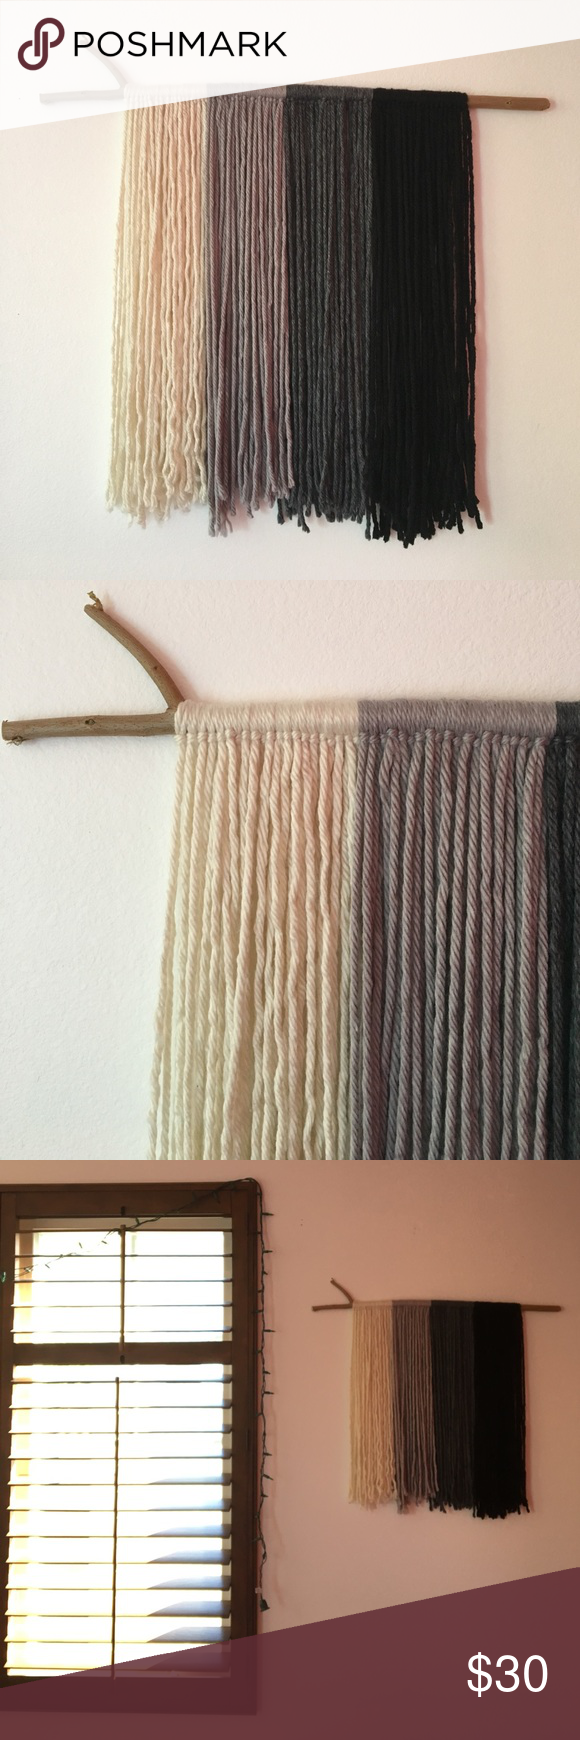 Boho Yarn Wall Art Handmade yarn wall hanging. About 2.5ft W x 2ft L. *Not Free People brand, listed for exposure* Free People Accessories